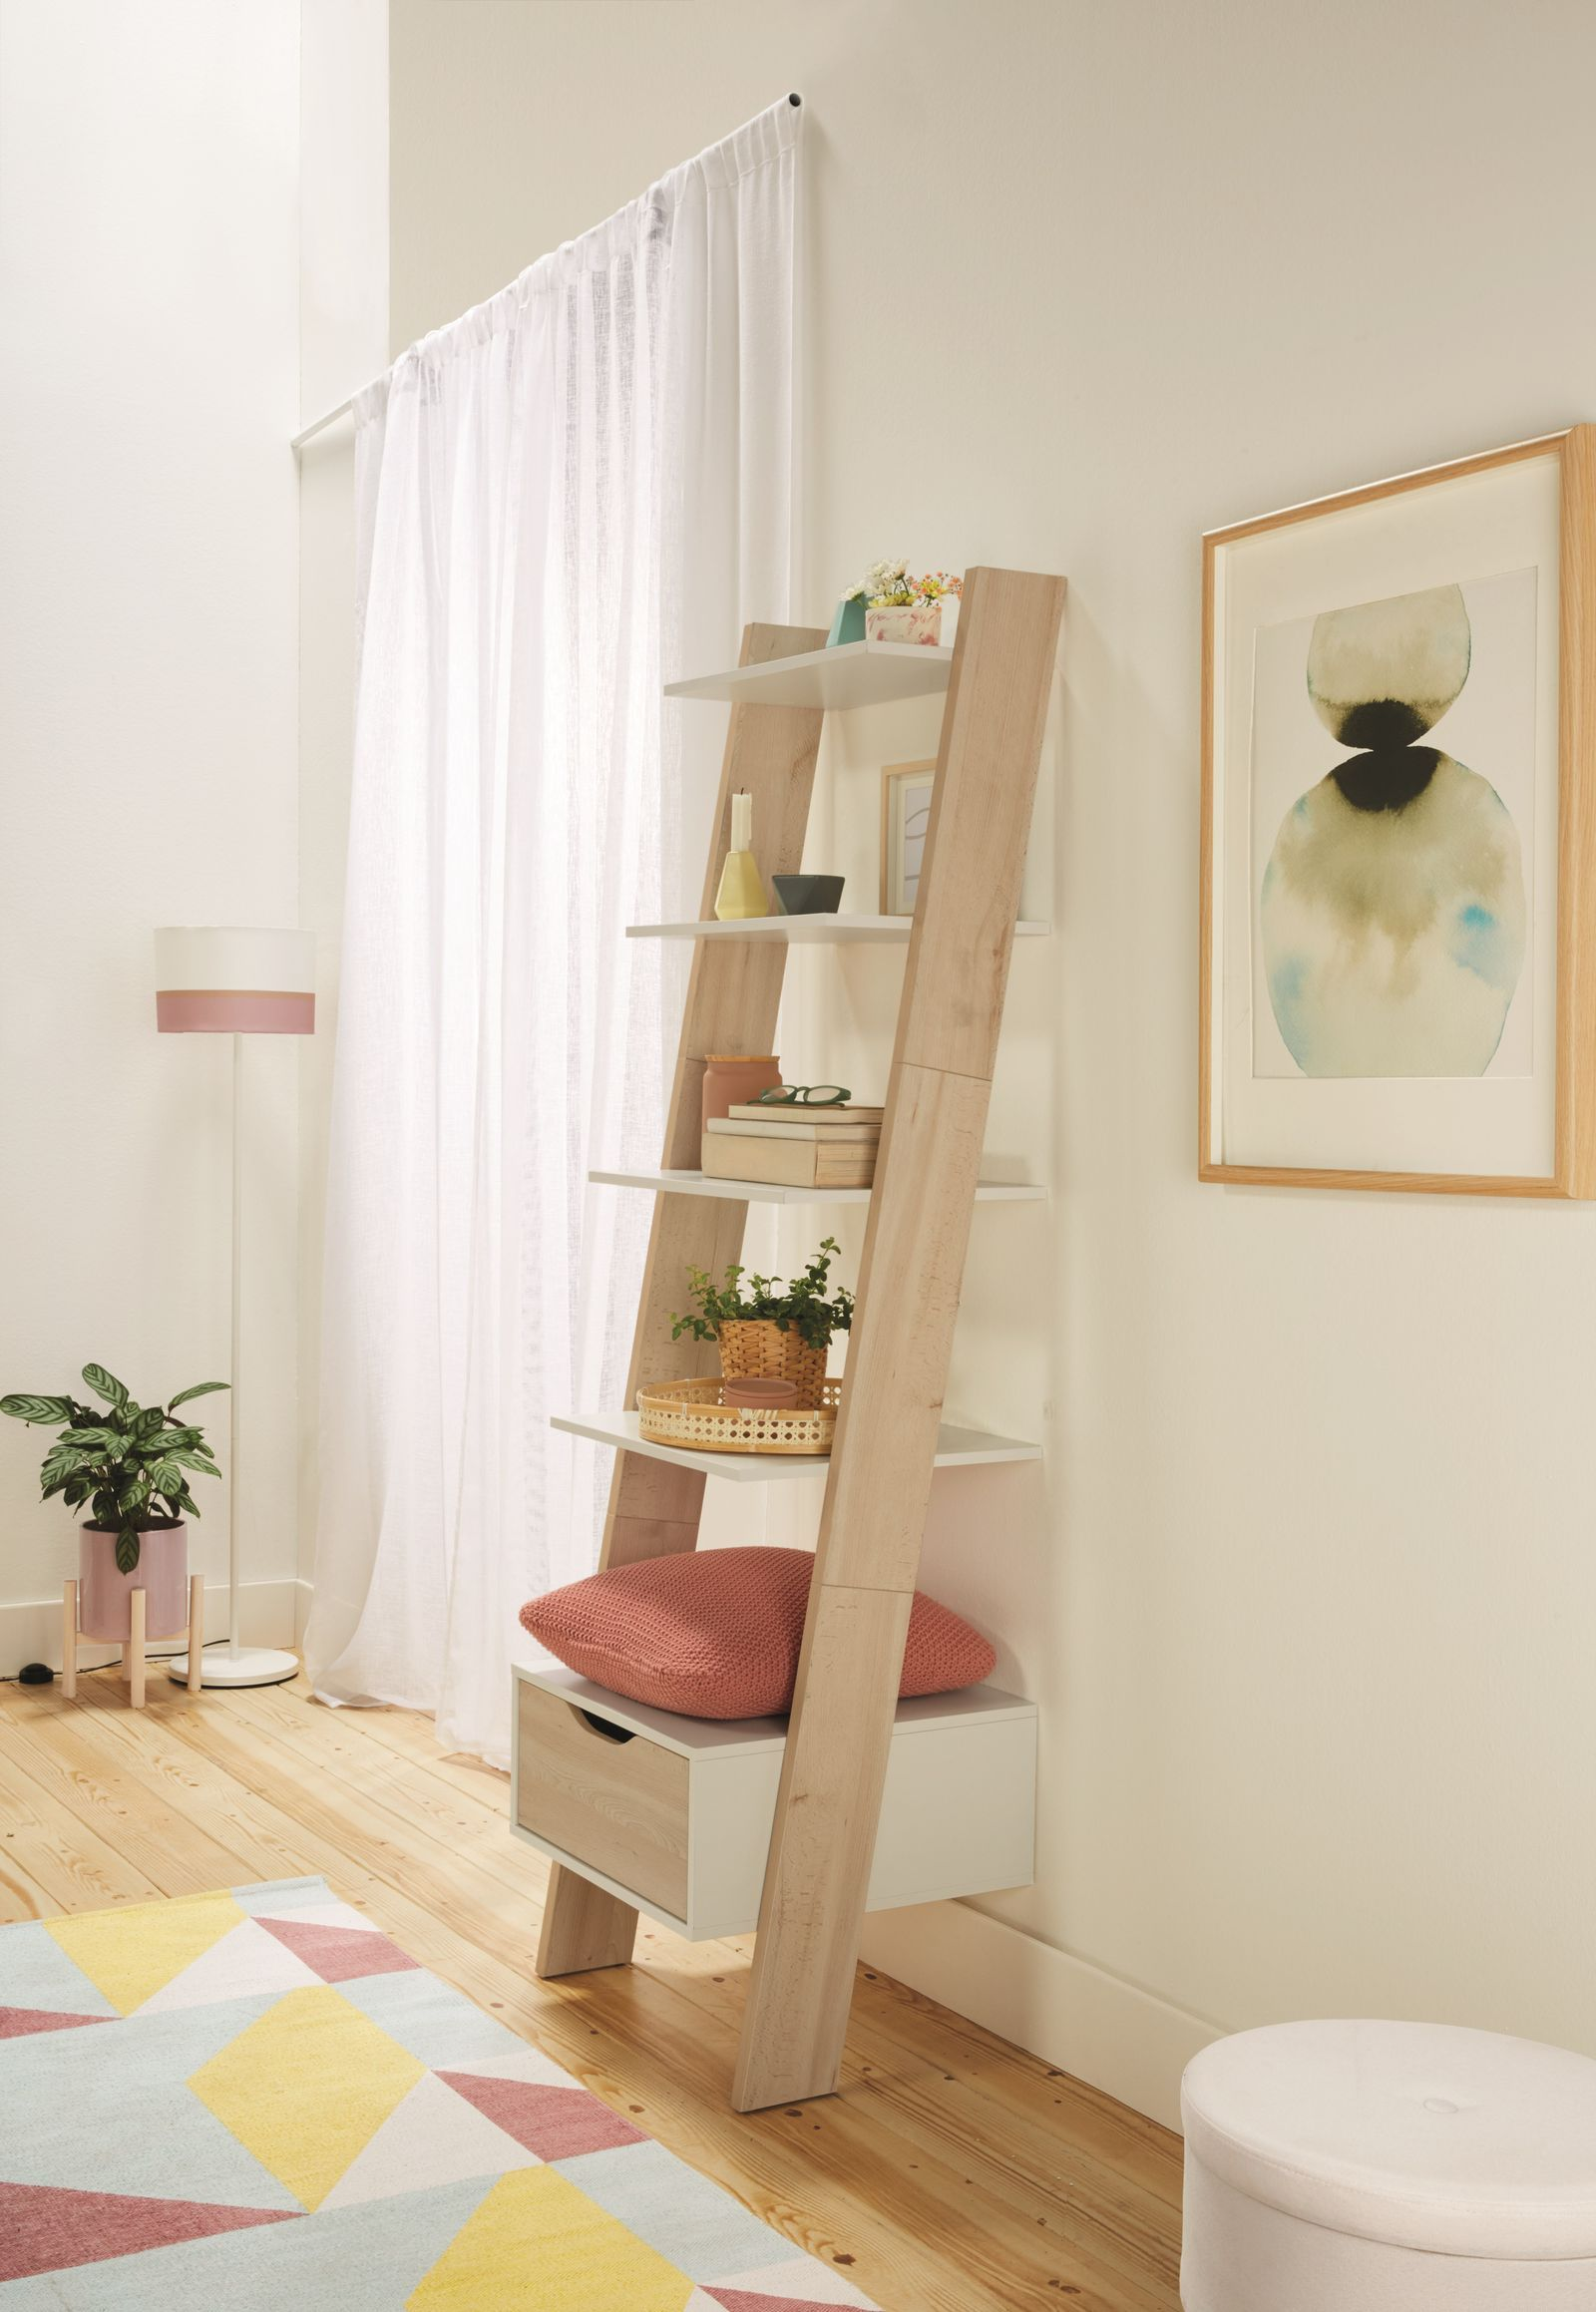 Lidl Is Selling A Scandi Inspired Ladder Shelving Unit For 50